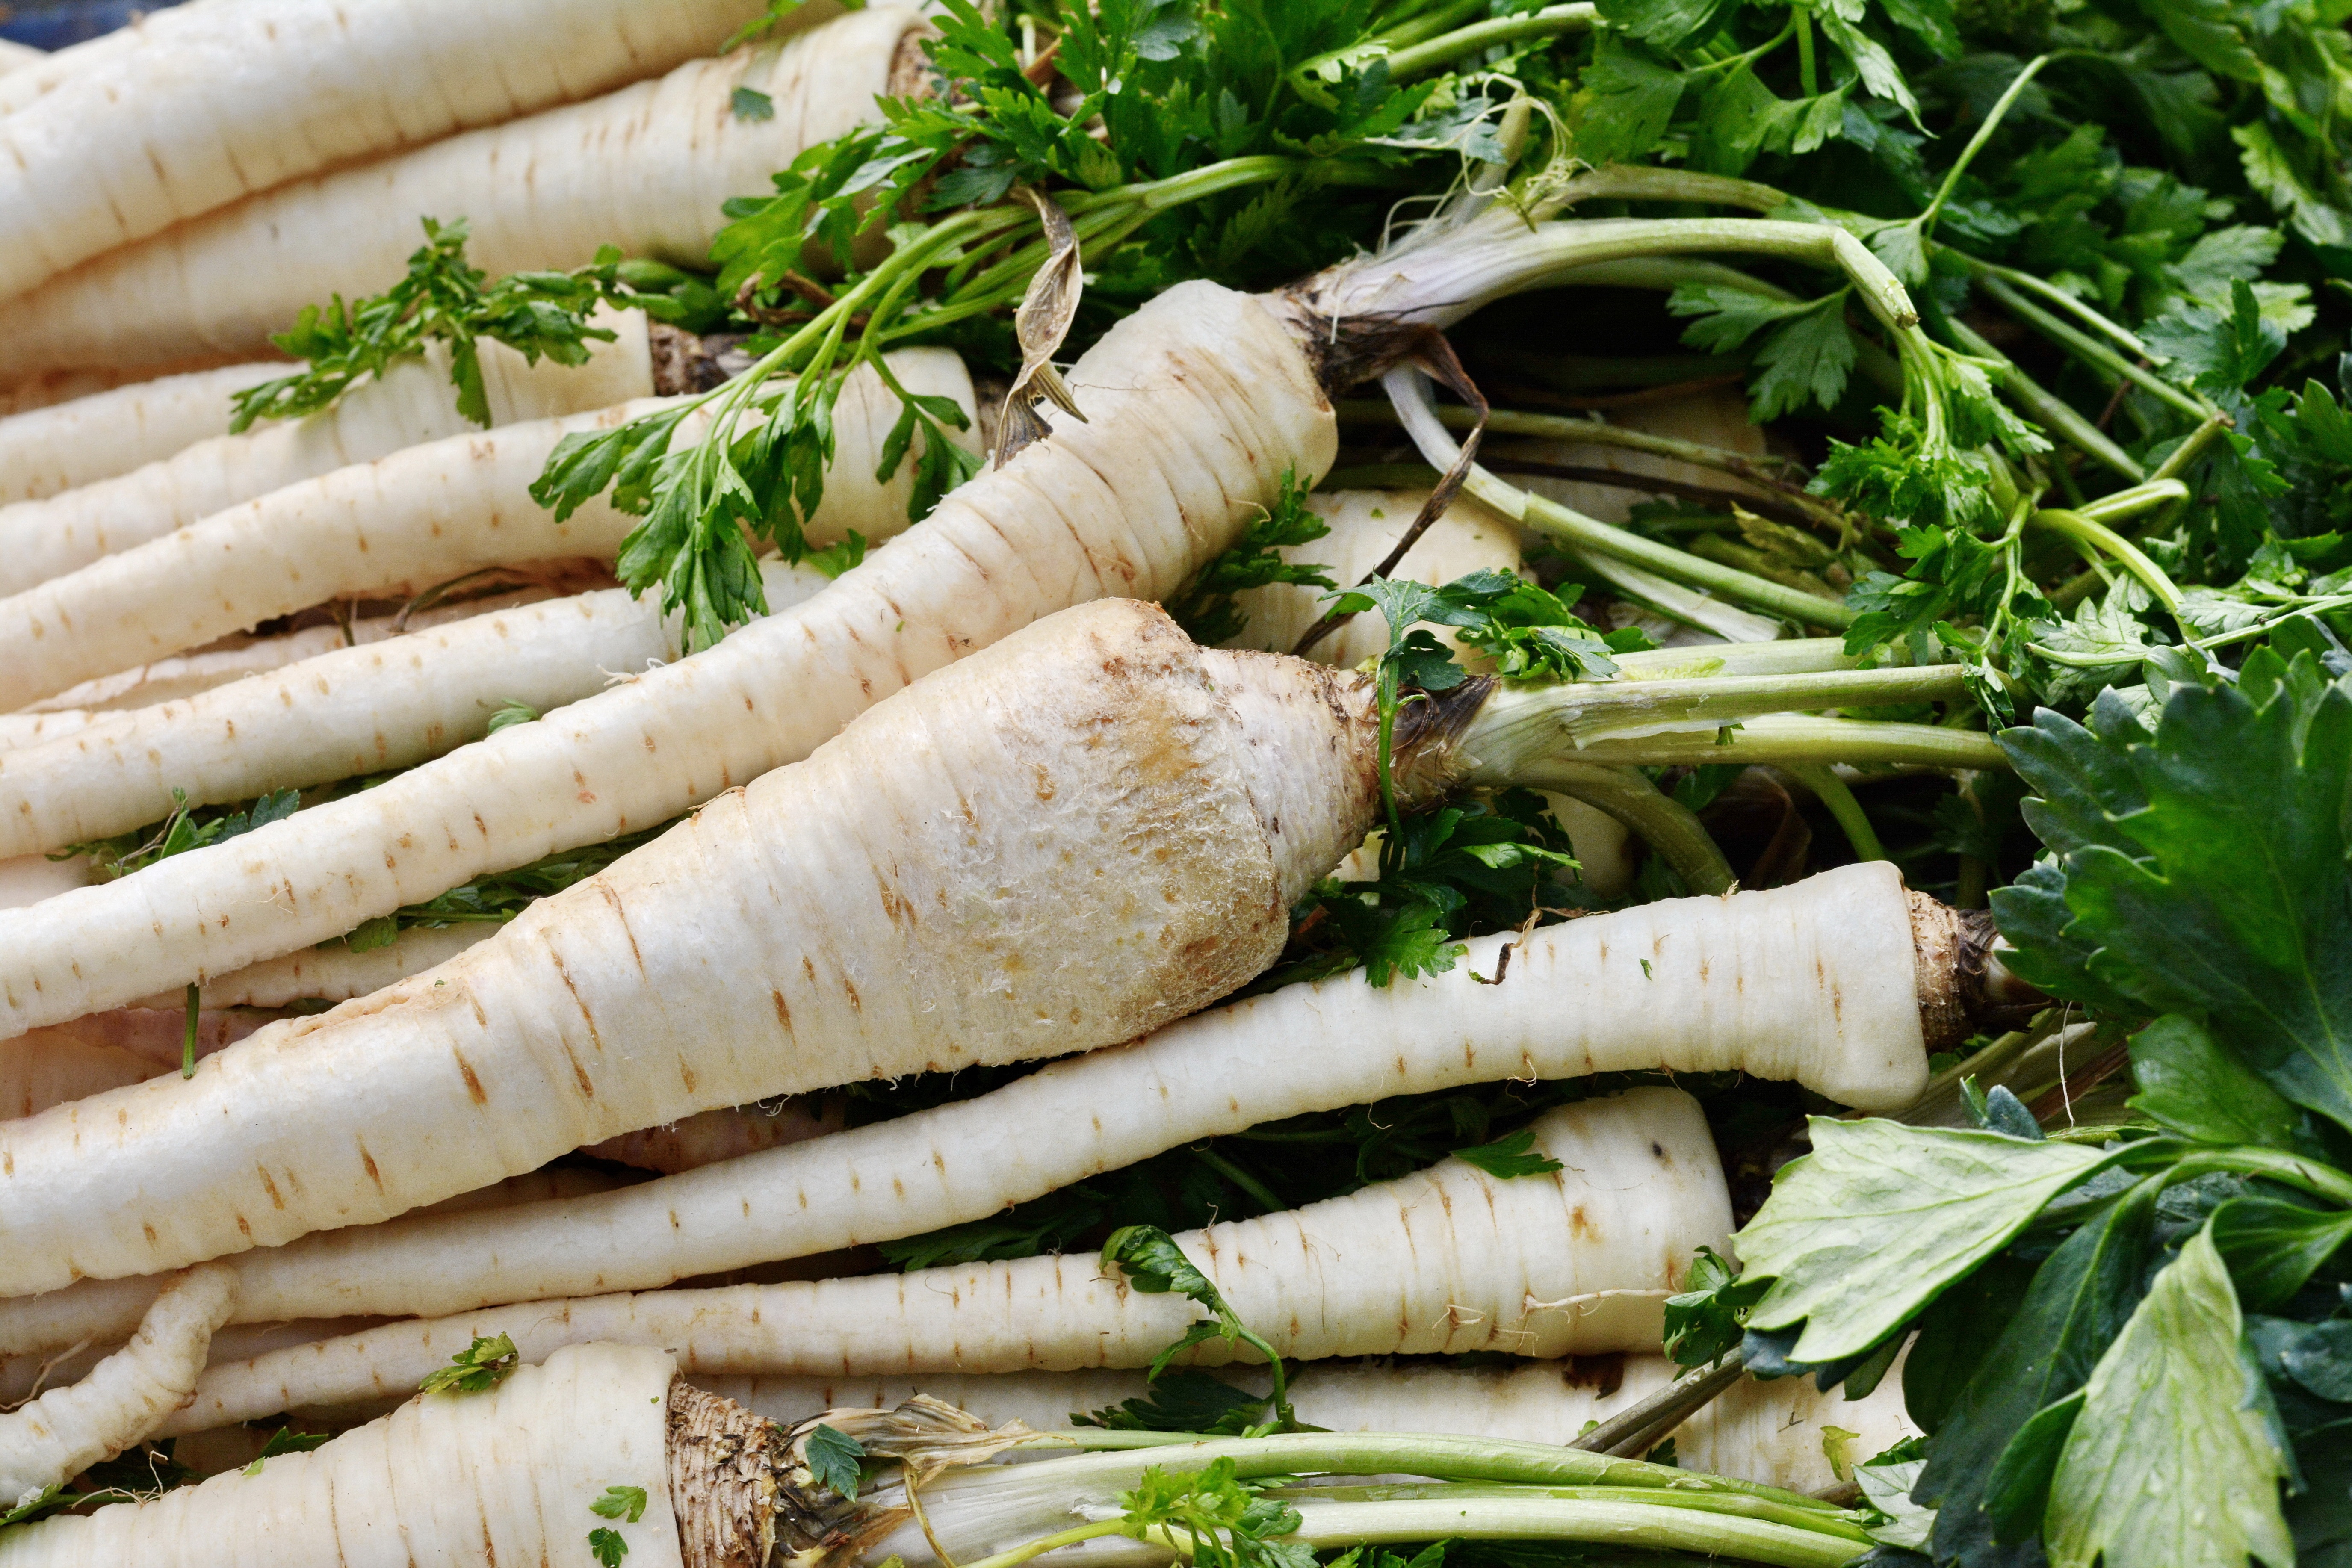 Fresh, parsnips at the weekly market. A bunch of parsnip. Full frame of vegetable.